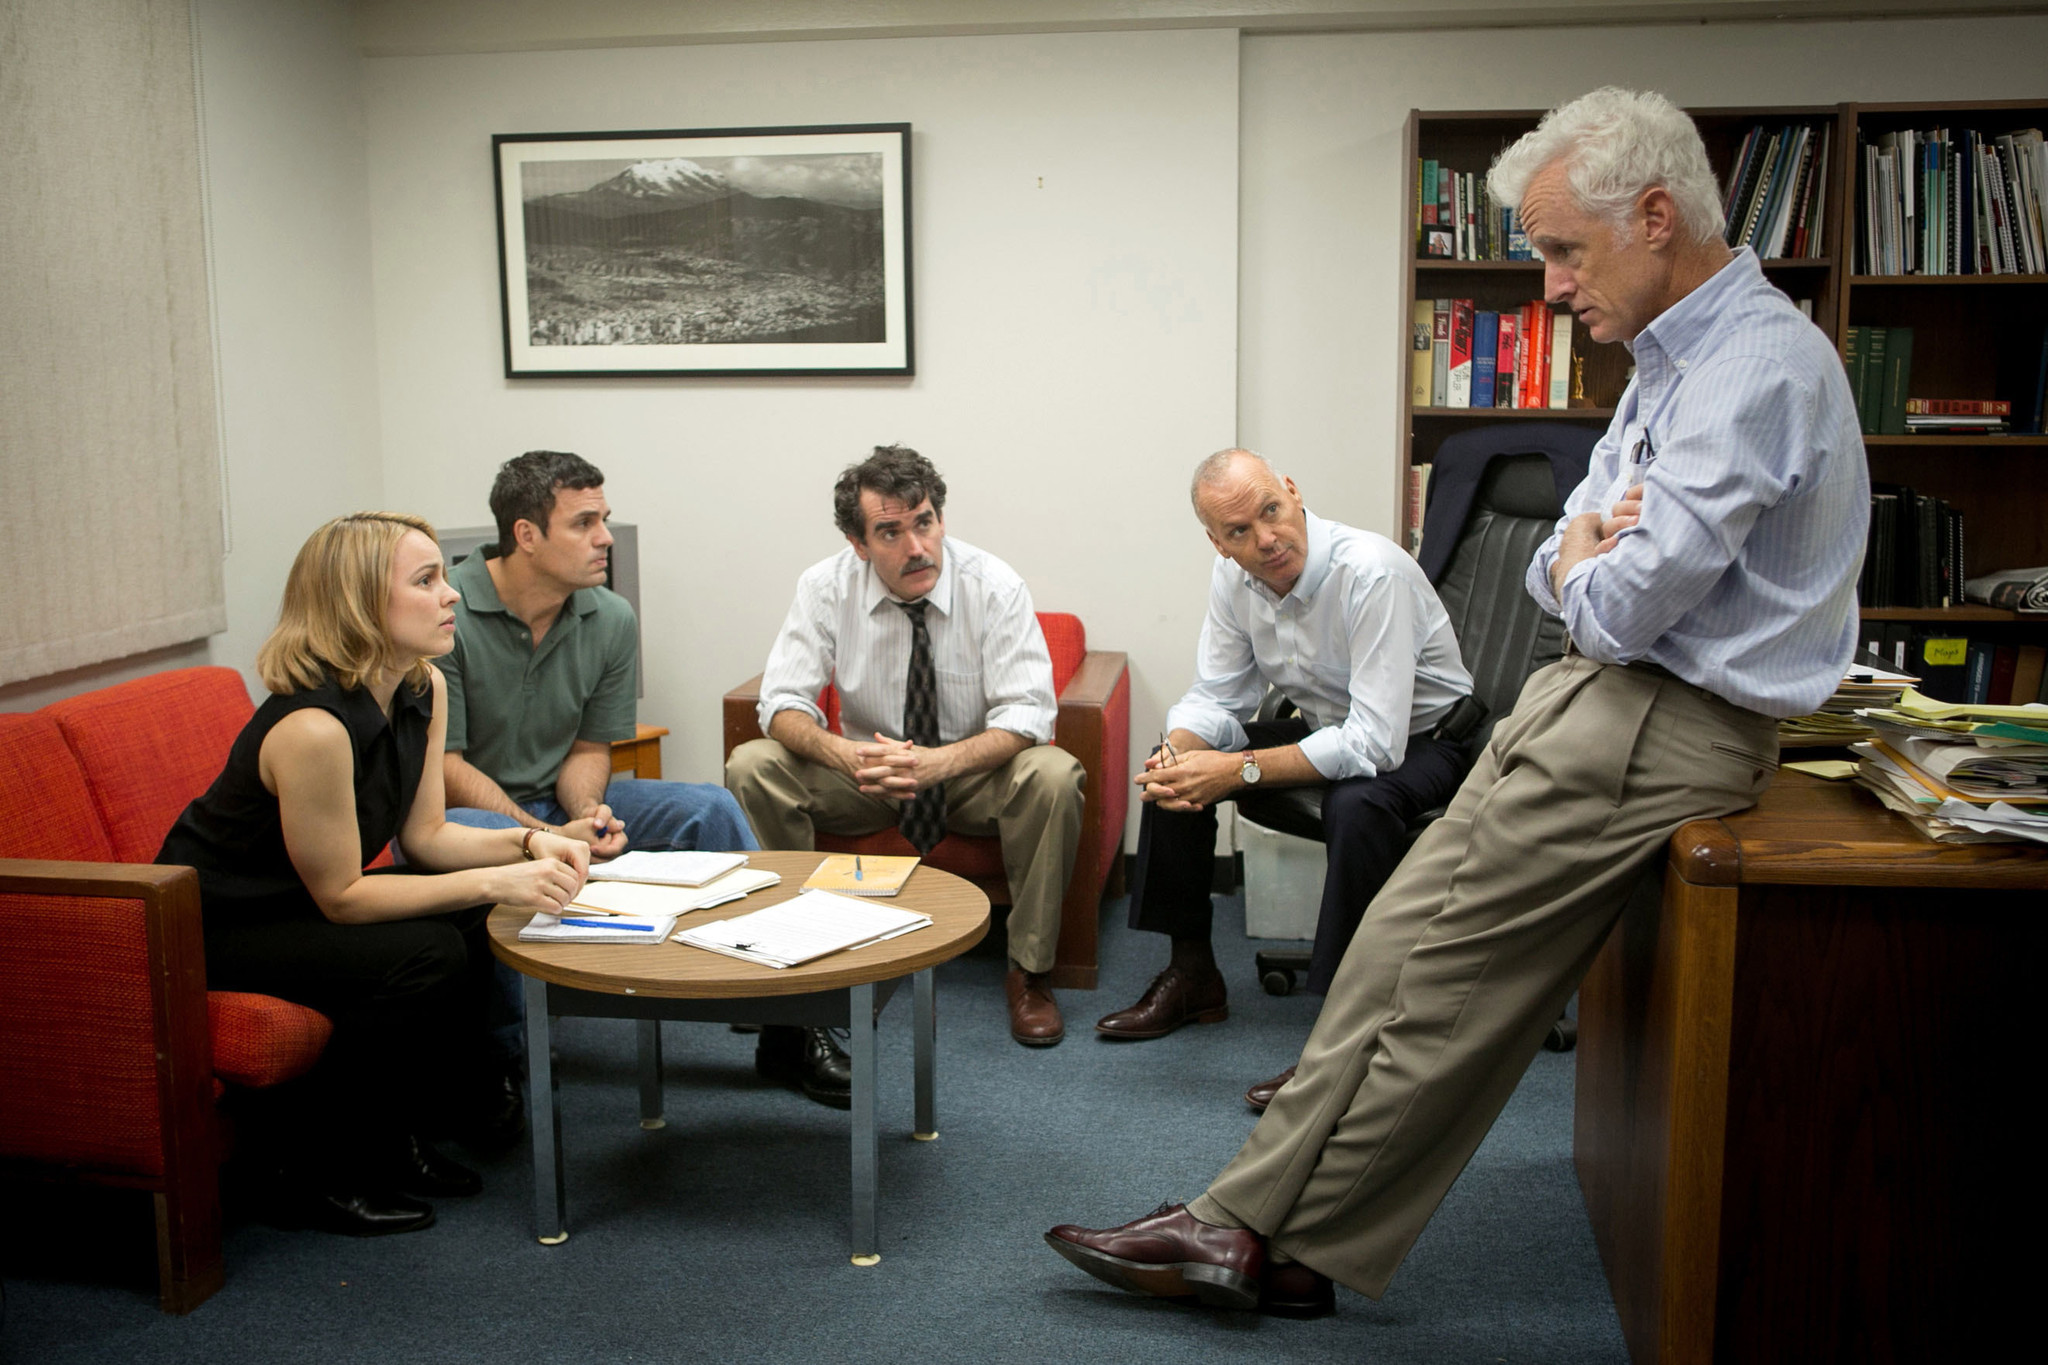 A scene from the film 'Spotlight'